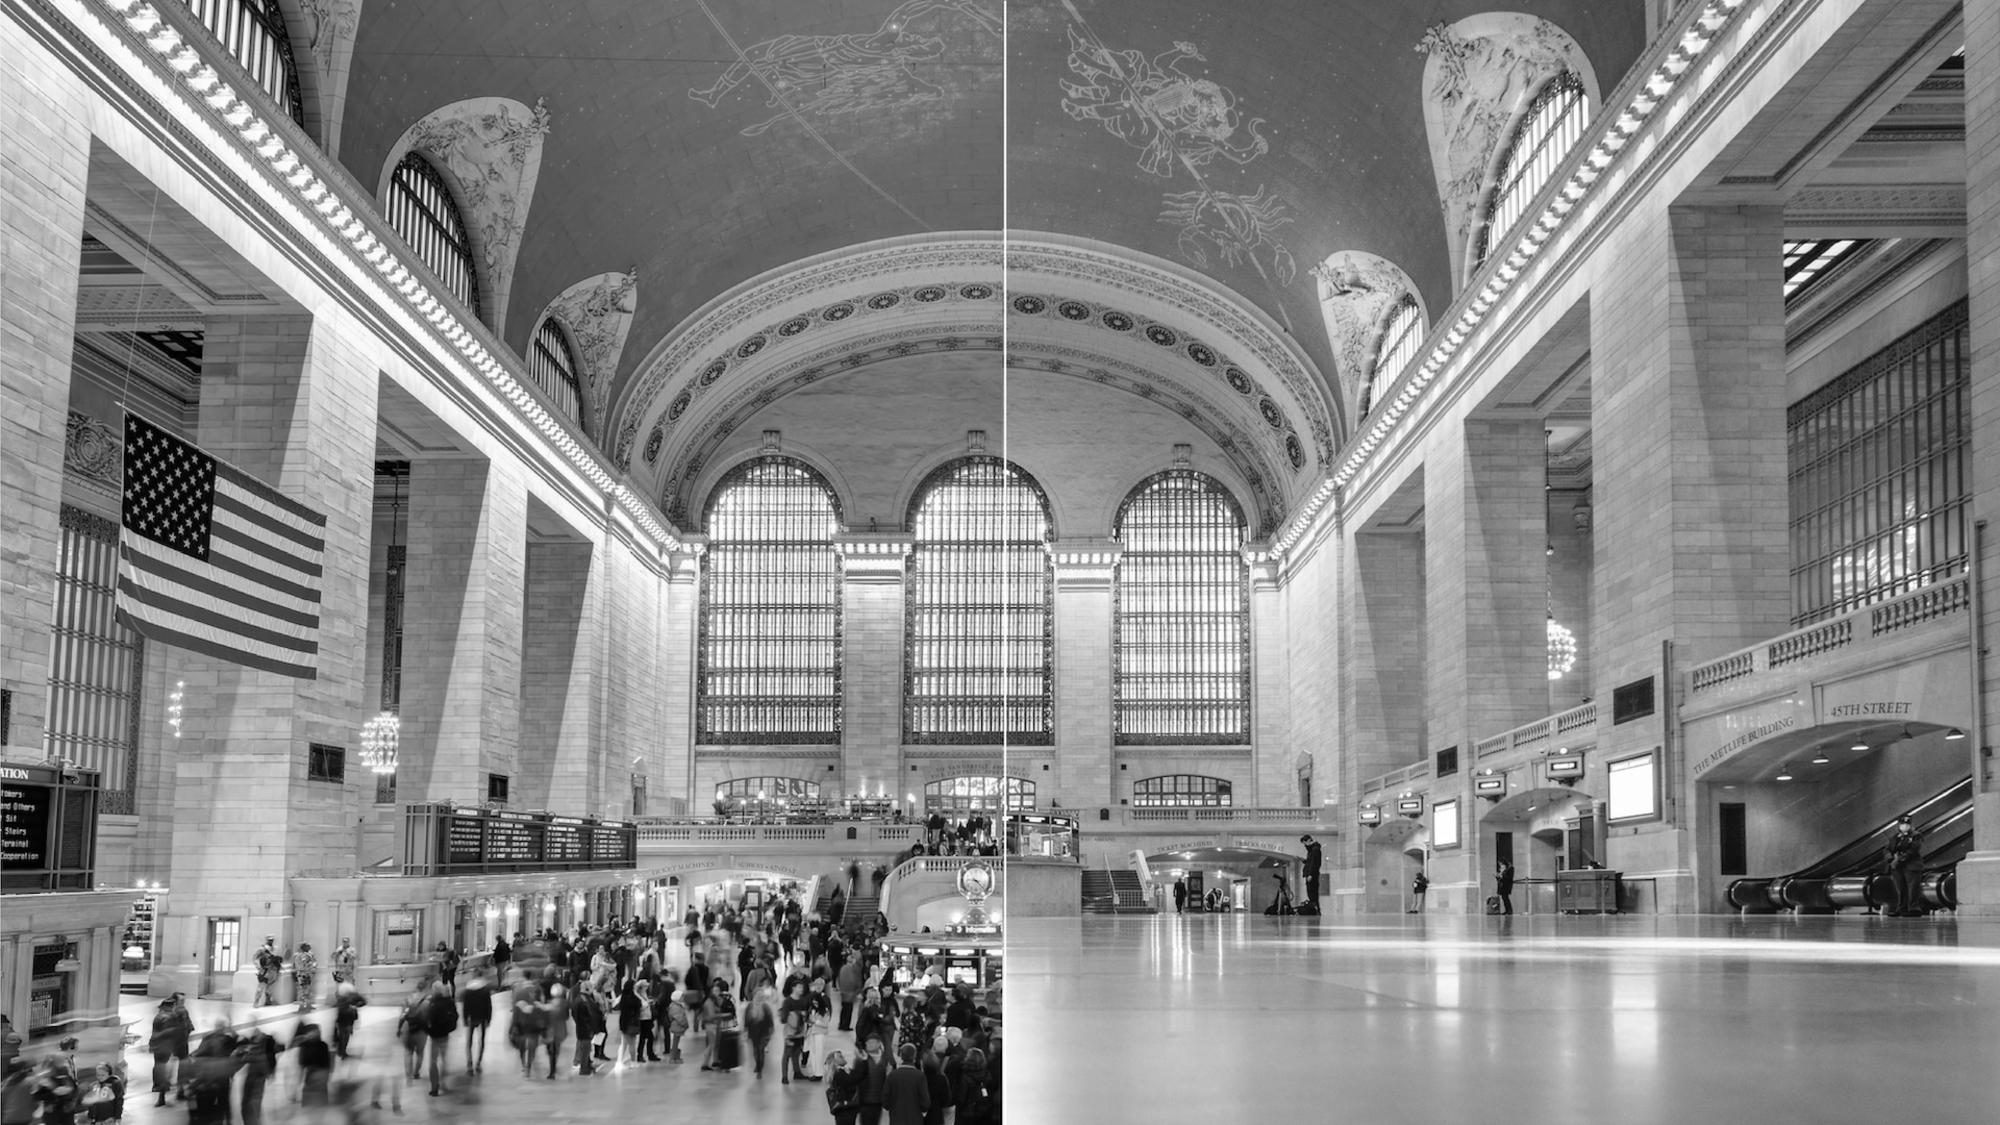 Grand Central Station before and during COVID-19